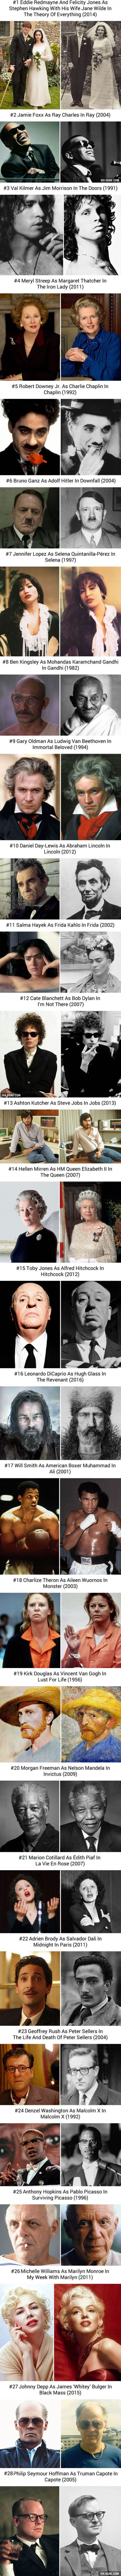 28 Actors / Actresses Vs. Historic People They Played